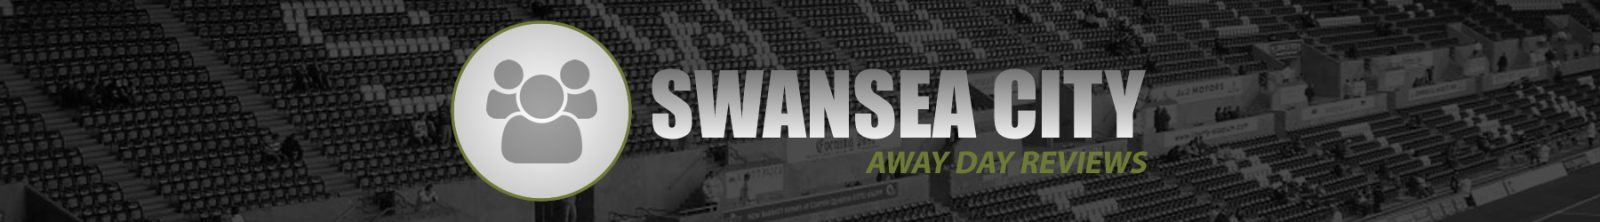 Review Swansea City